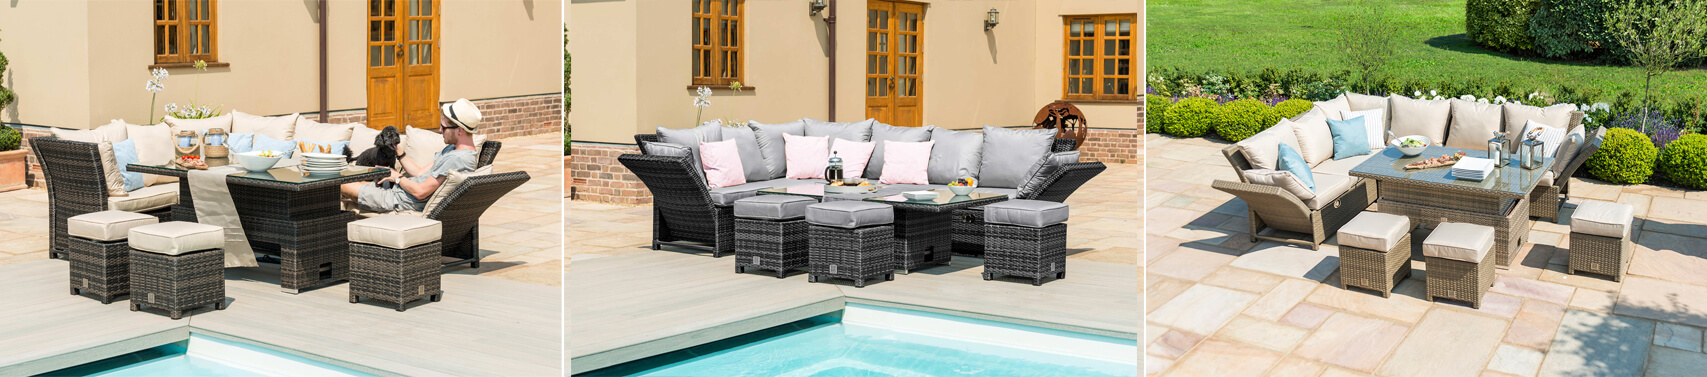 mbimages/m/a/maze_henley_garden_corner_sofa_set_with_rising_table.jpg